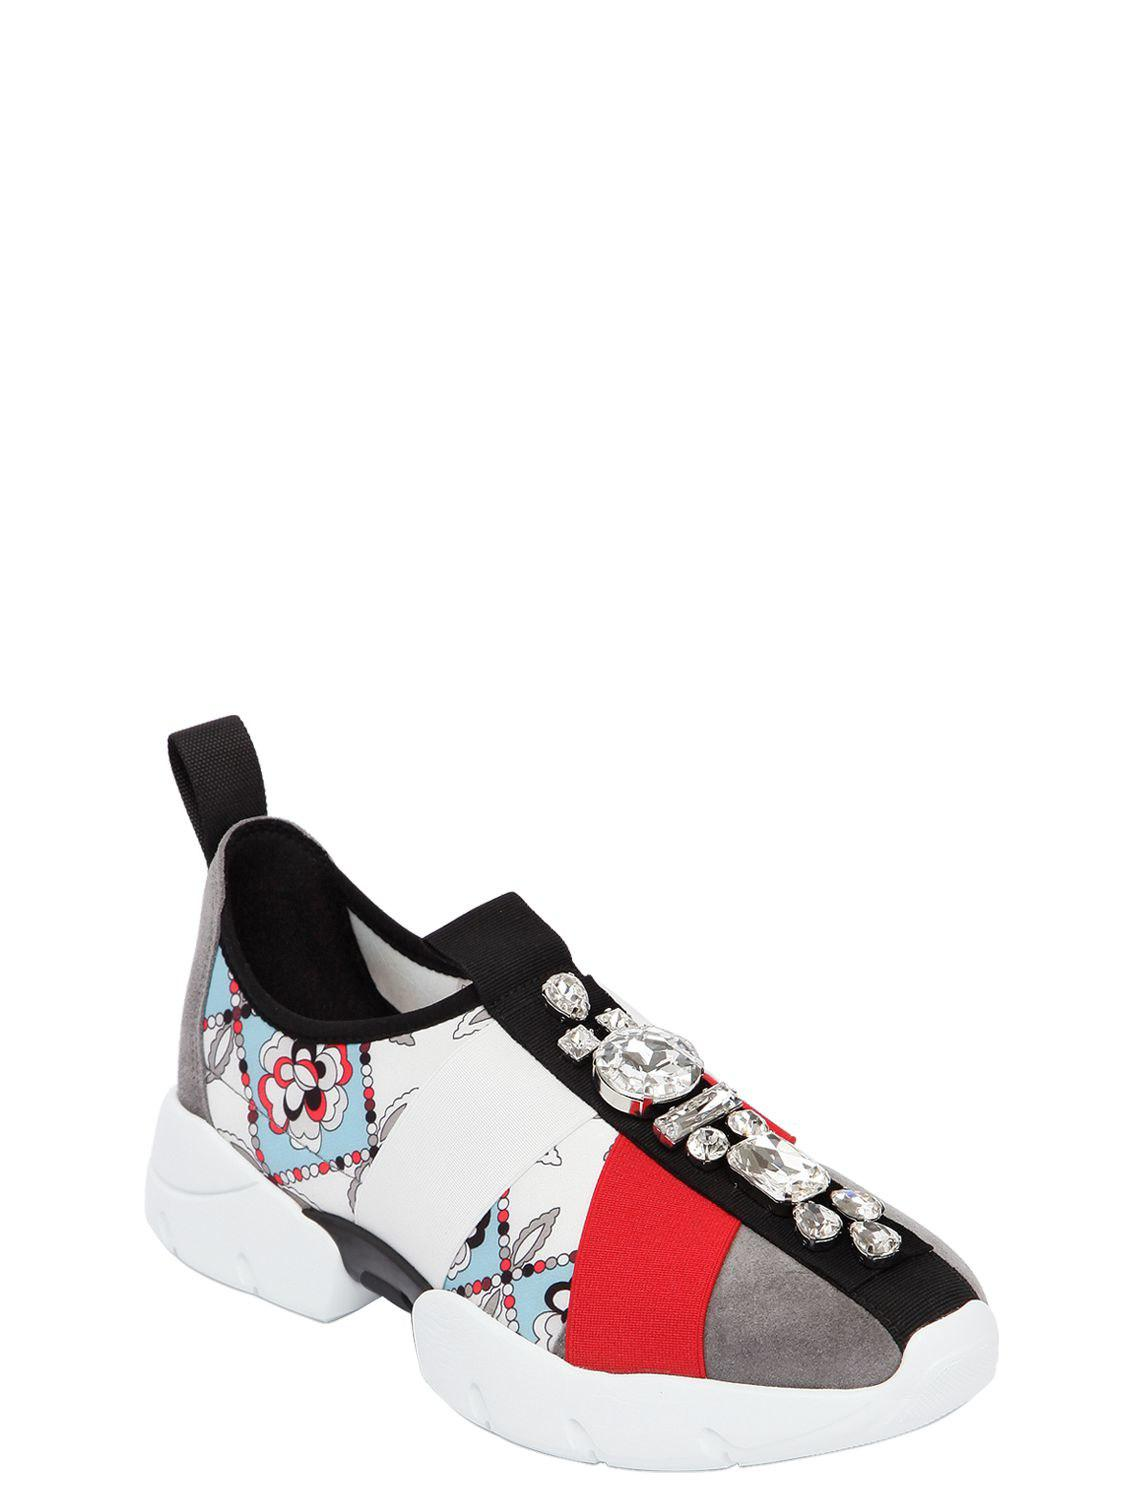 Emilio Pucci 30MM CRYSTALS SUEDE & NEOPRENE SNEAKERS Visit Online Q2jpUCS9AB